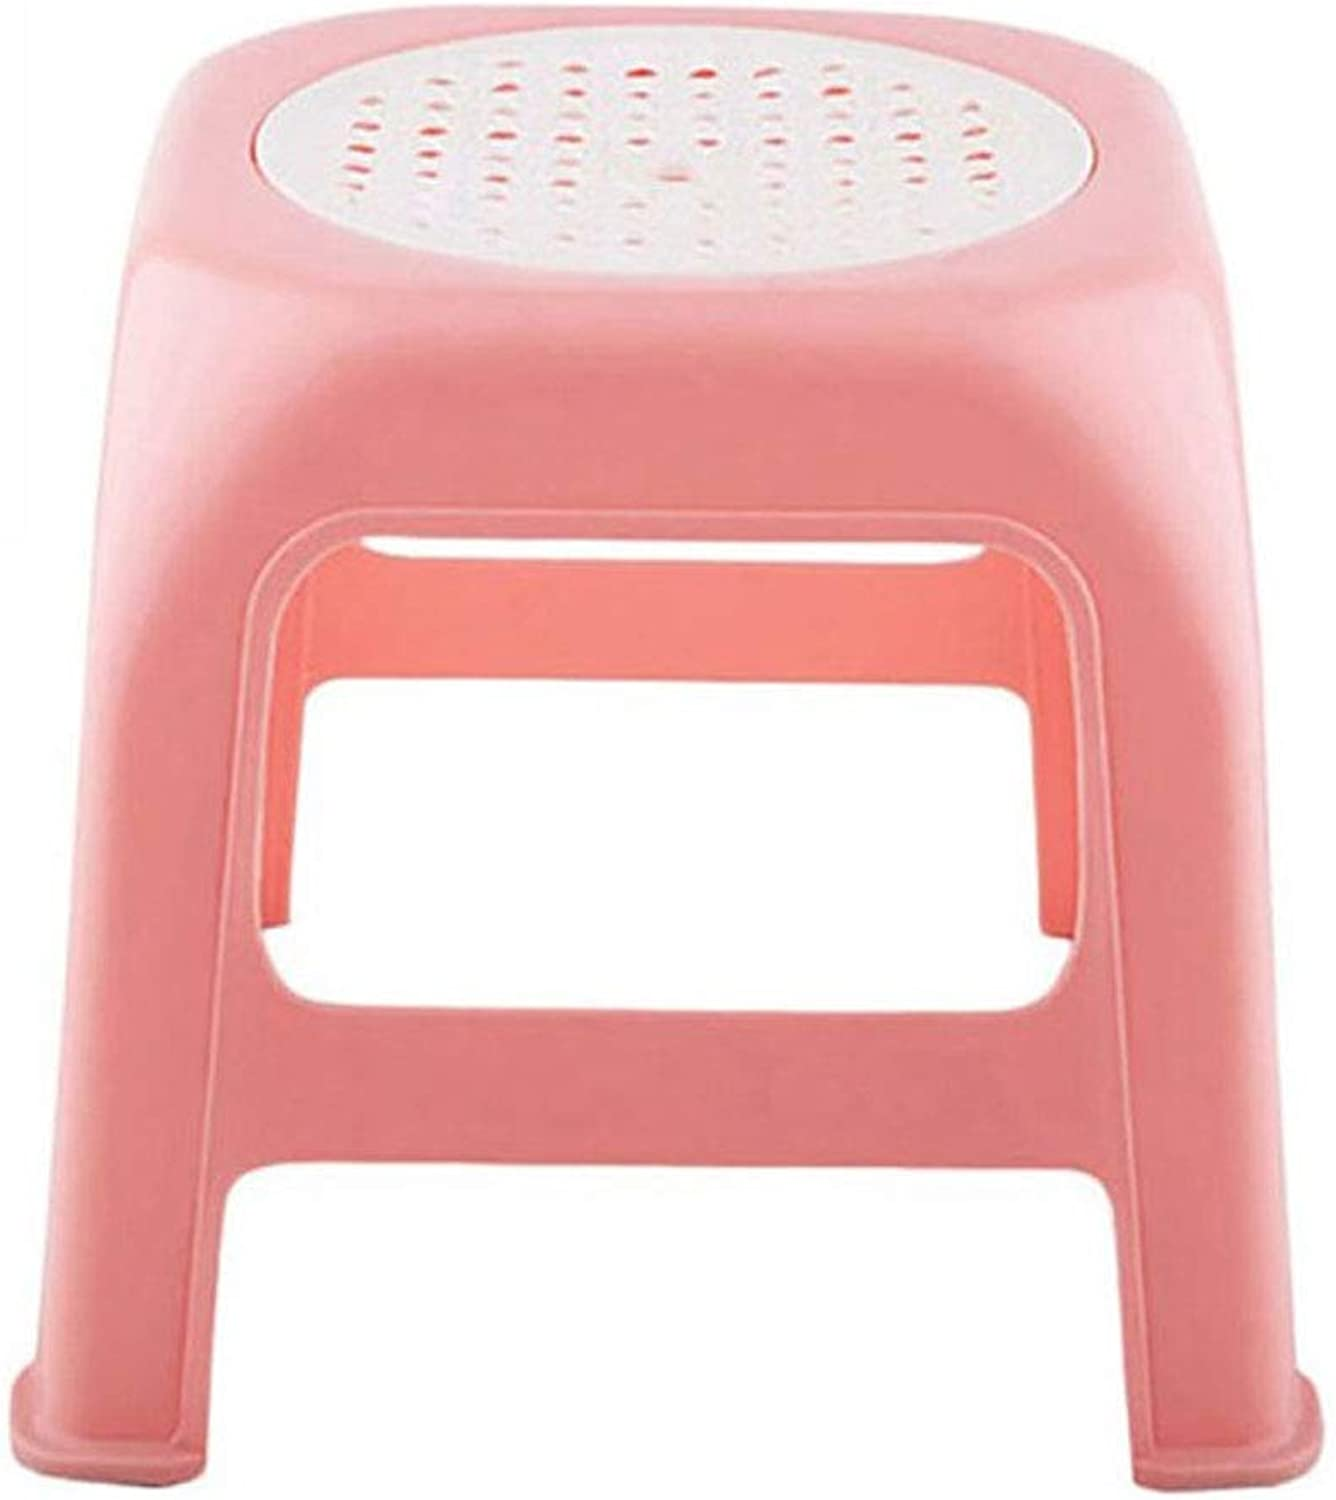 Stool Plastic Stool Thick Small Plastic Foot Stool for Kids and Adults Plastic Non-Slip Chairs Use in The Kitchen Bathroom and Bedroom 28 X28 X 26.5cm 01